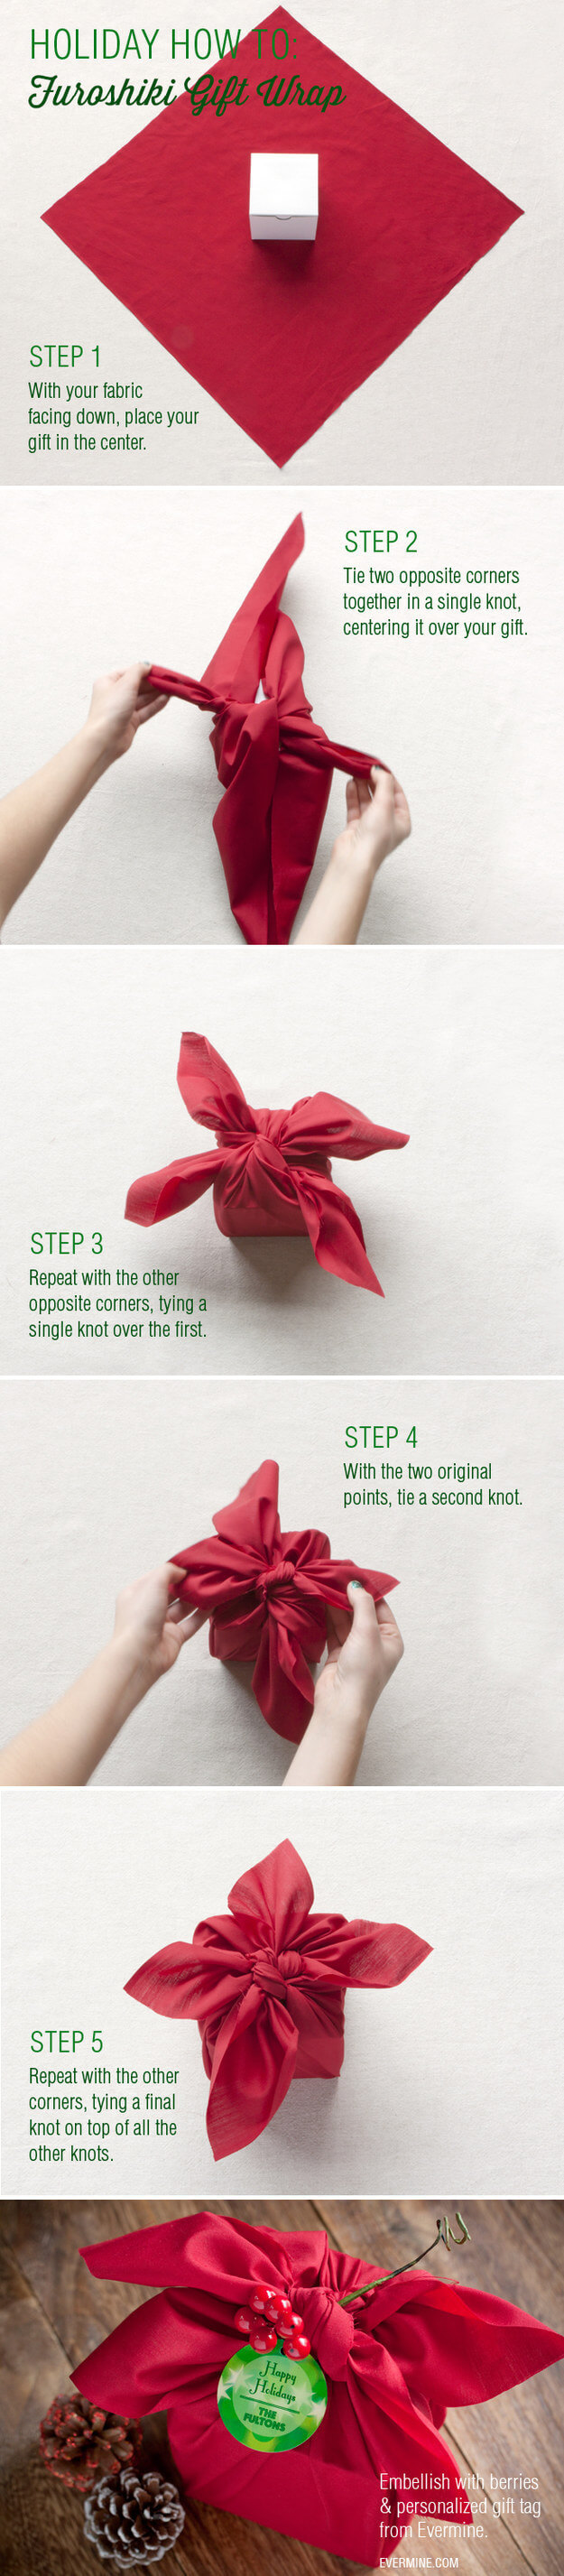 Diy Creative Gift Wrapping Ideas1